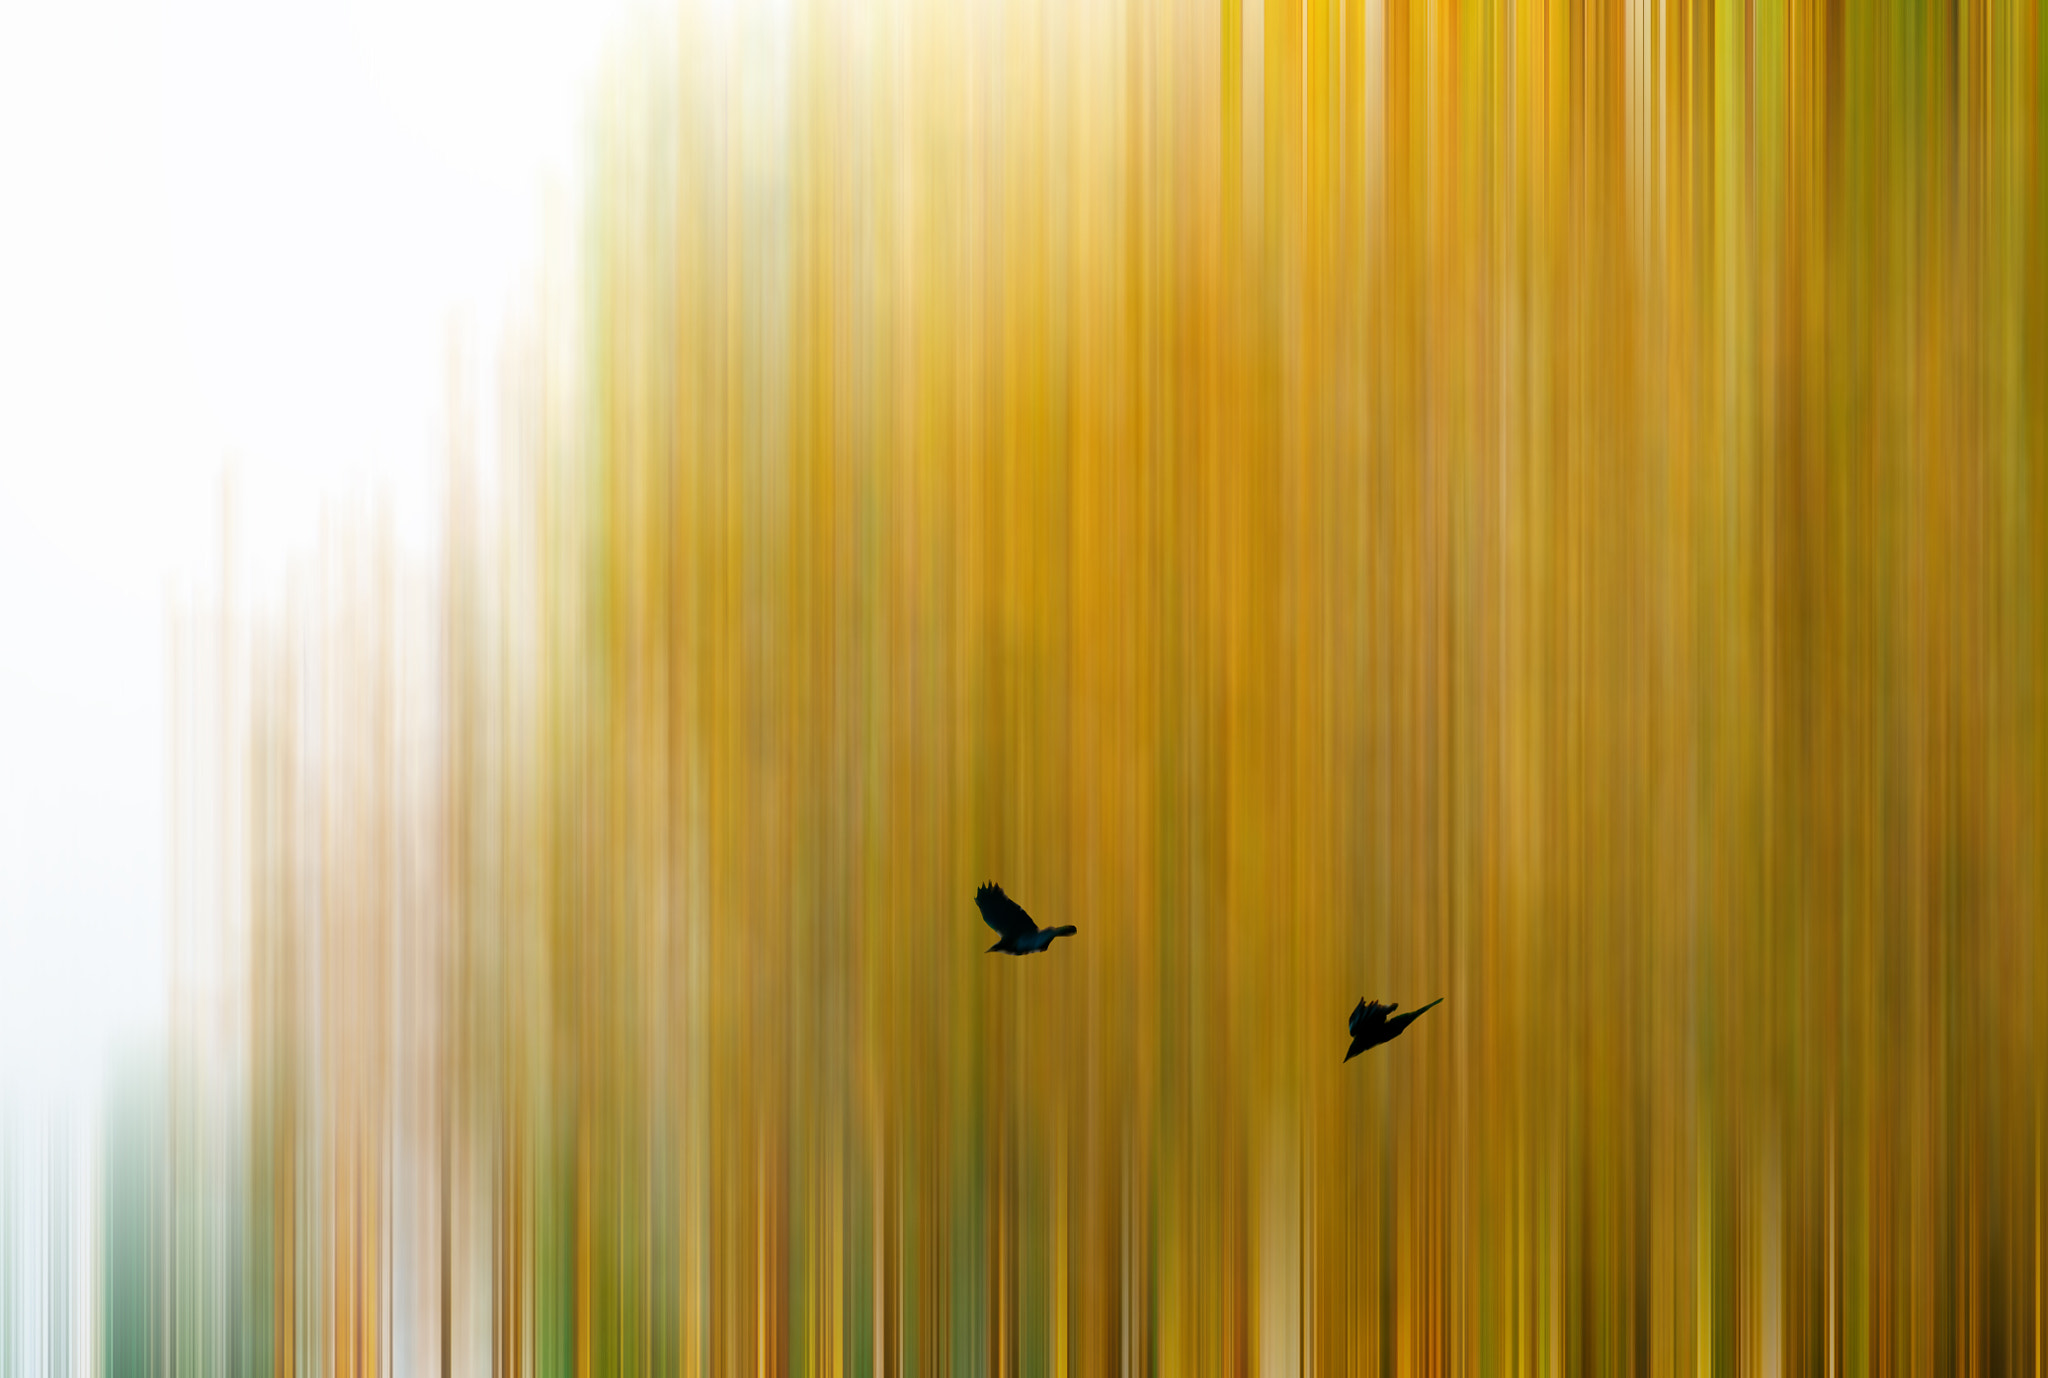 Photograph Fall Ravens by Pistol Wish ™ on 500px